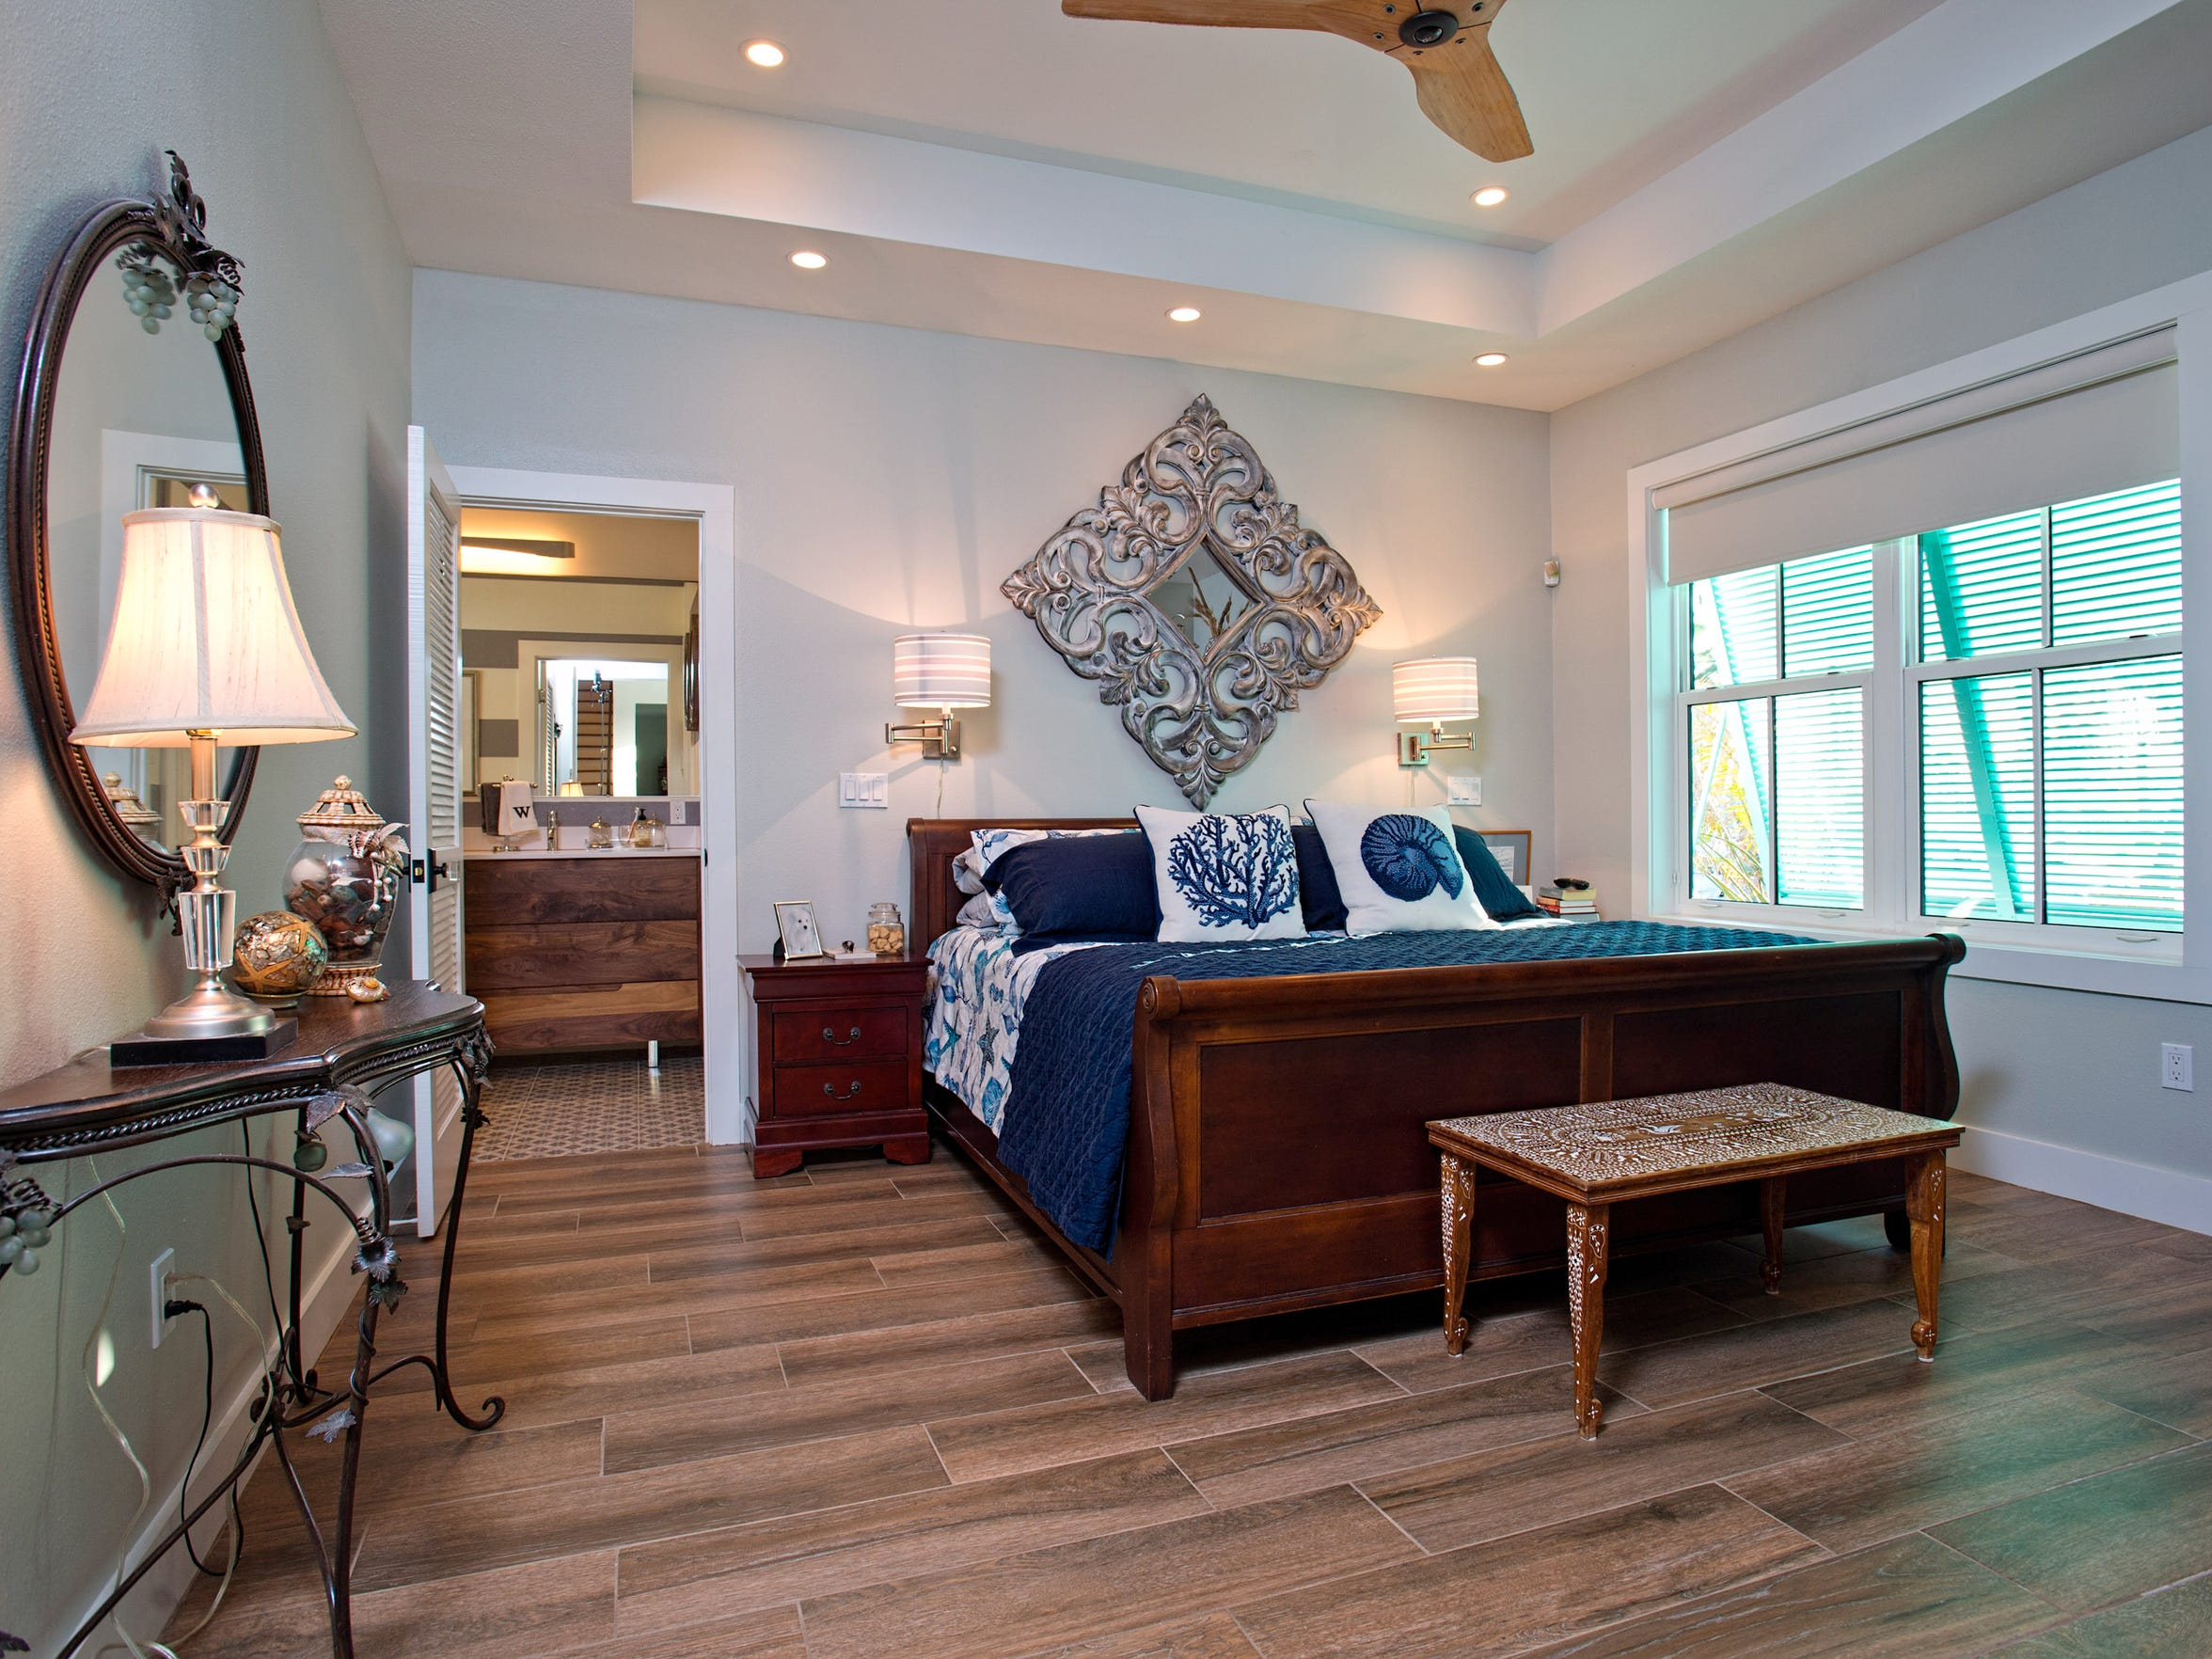 Wood look tile flooring covers the master bedroom which